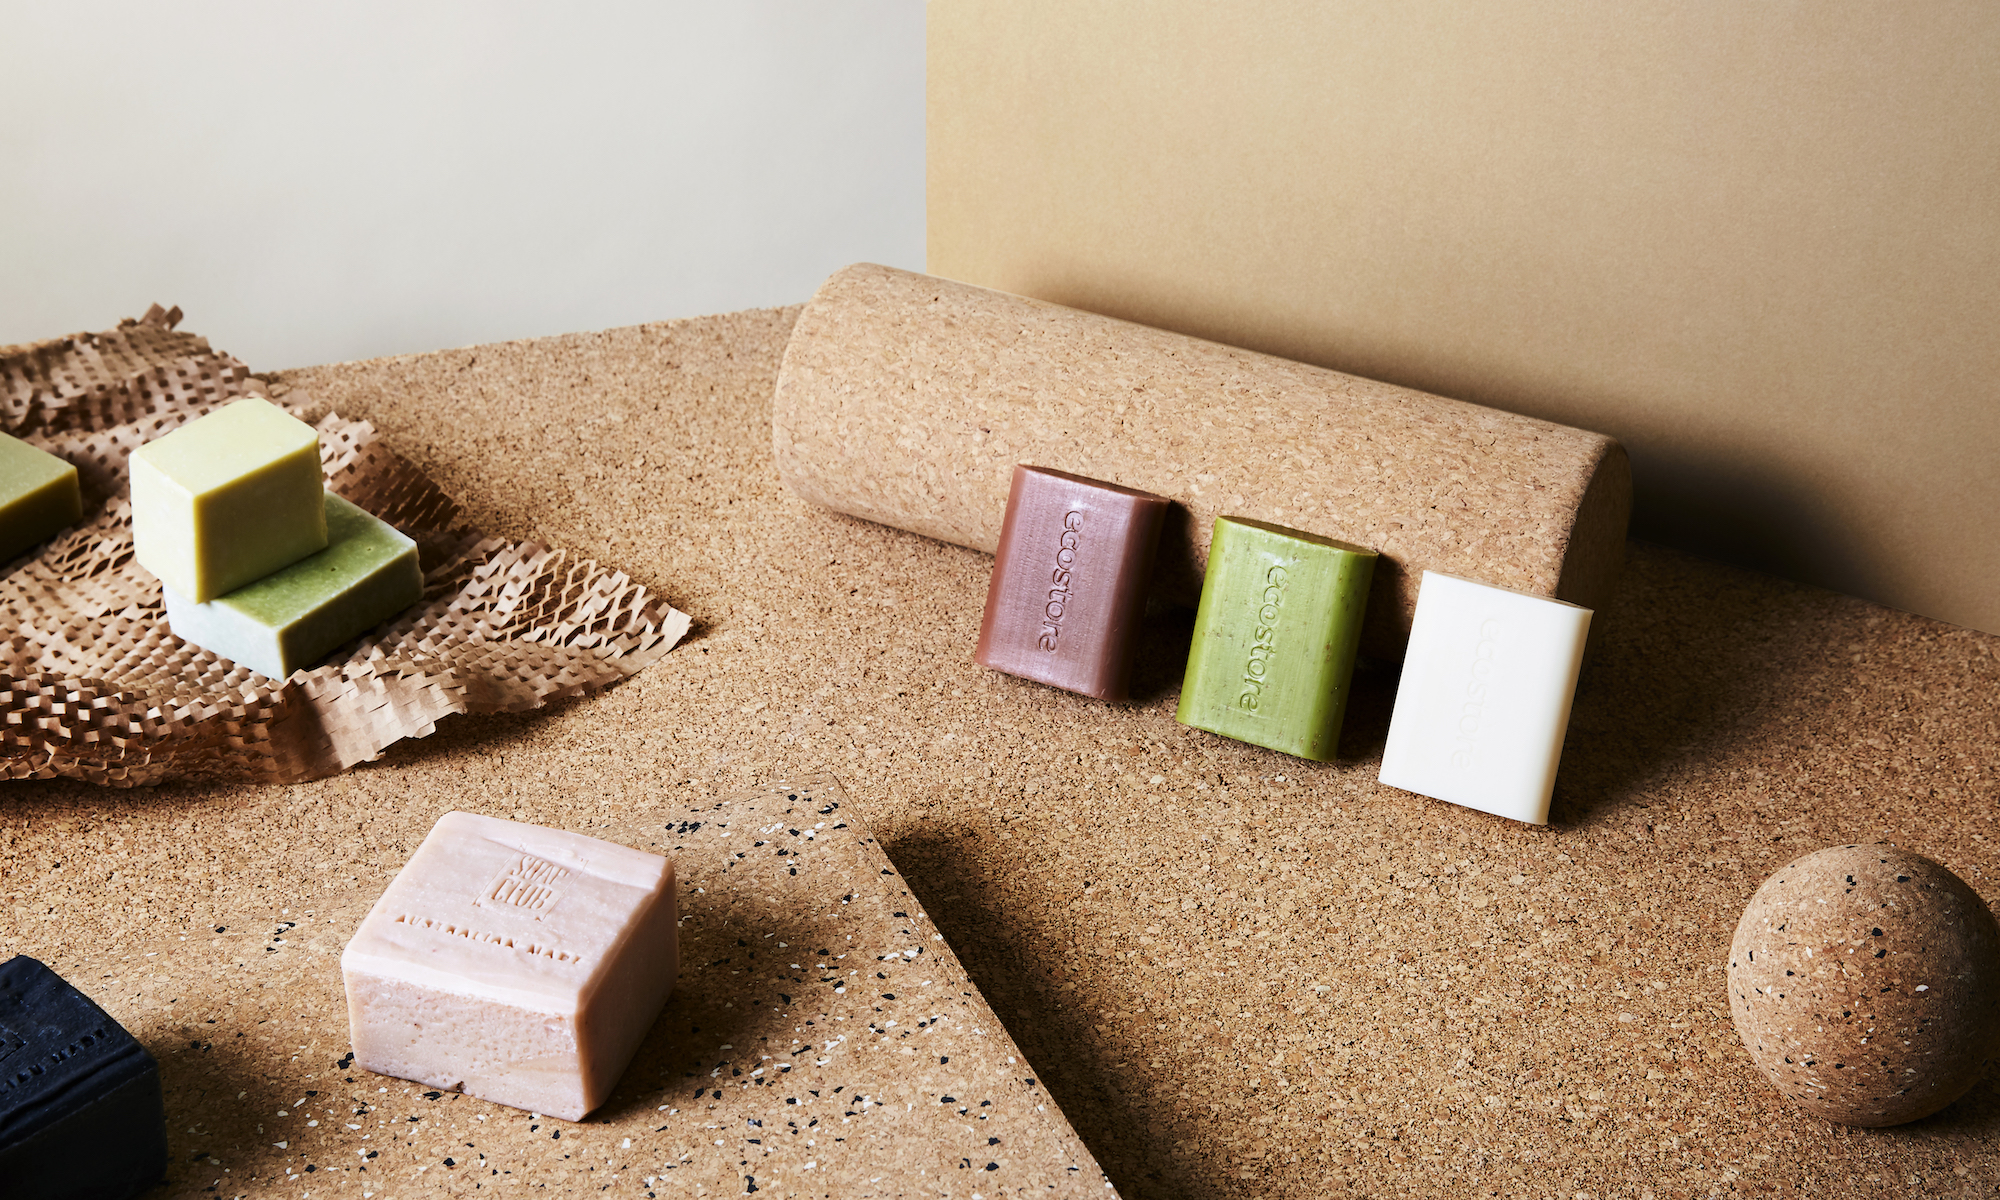 Featured in The Design Files - Alongside other fantastic and sustainable products